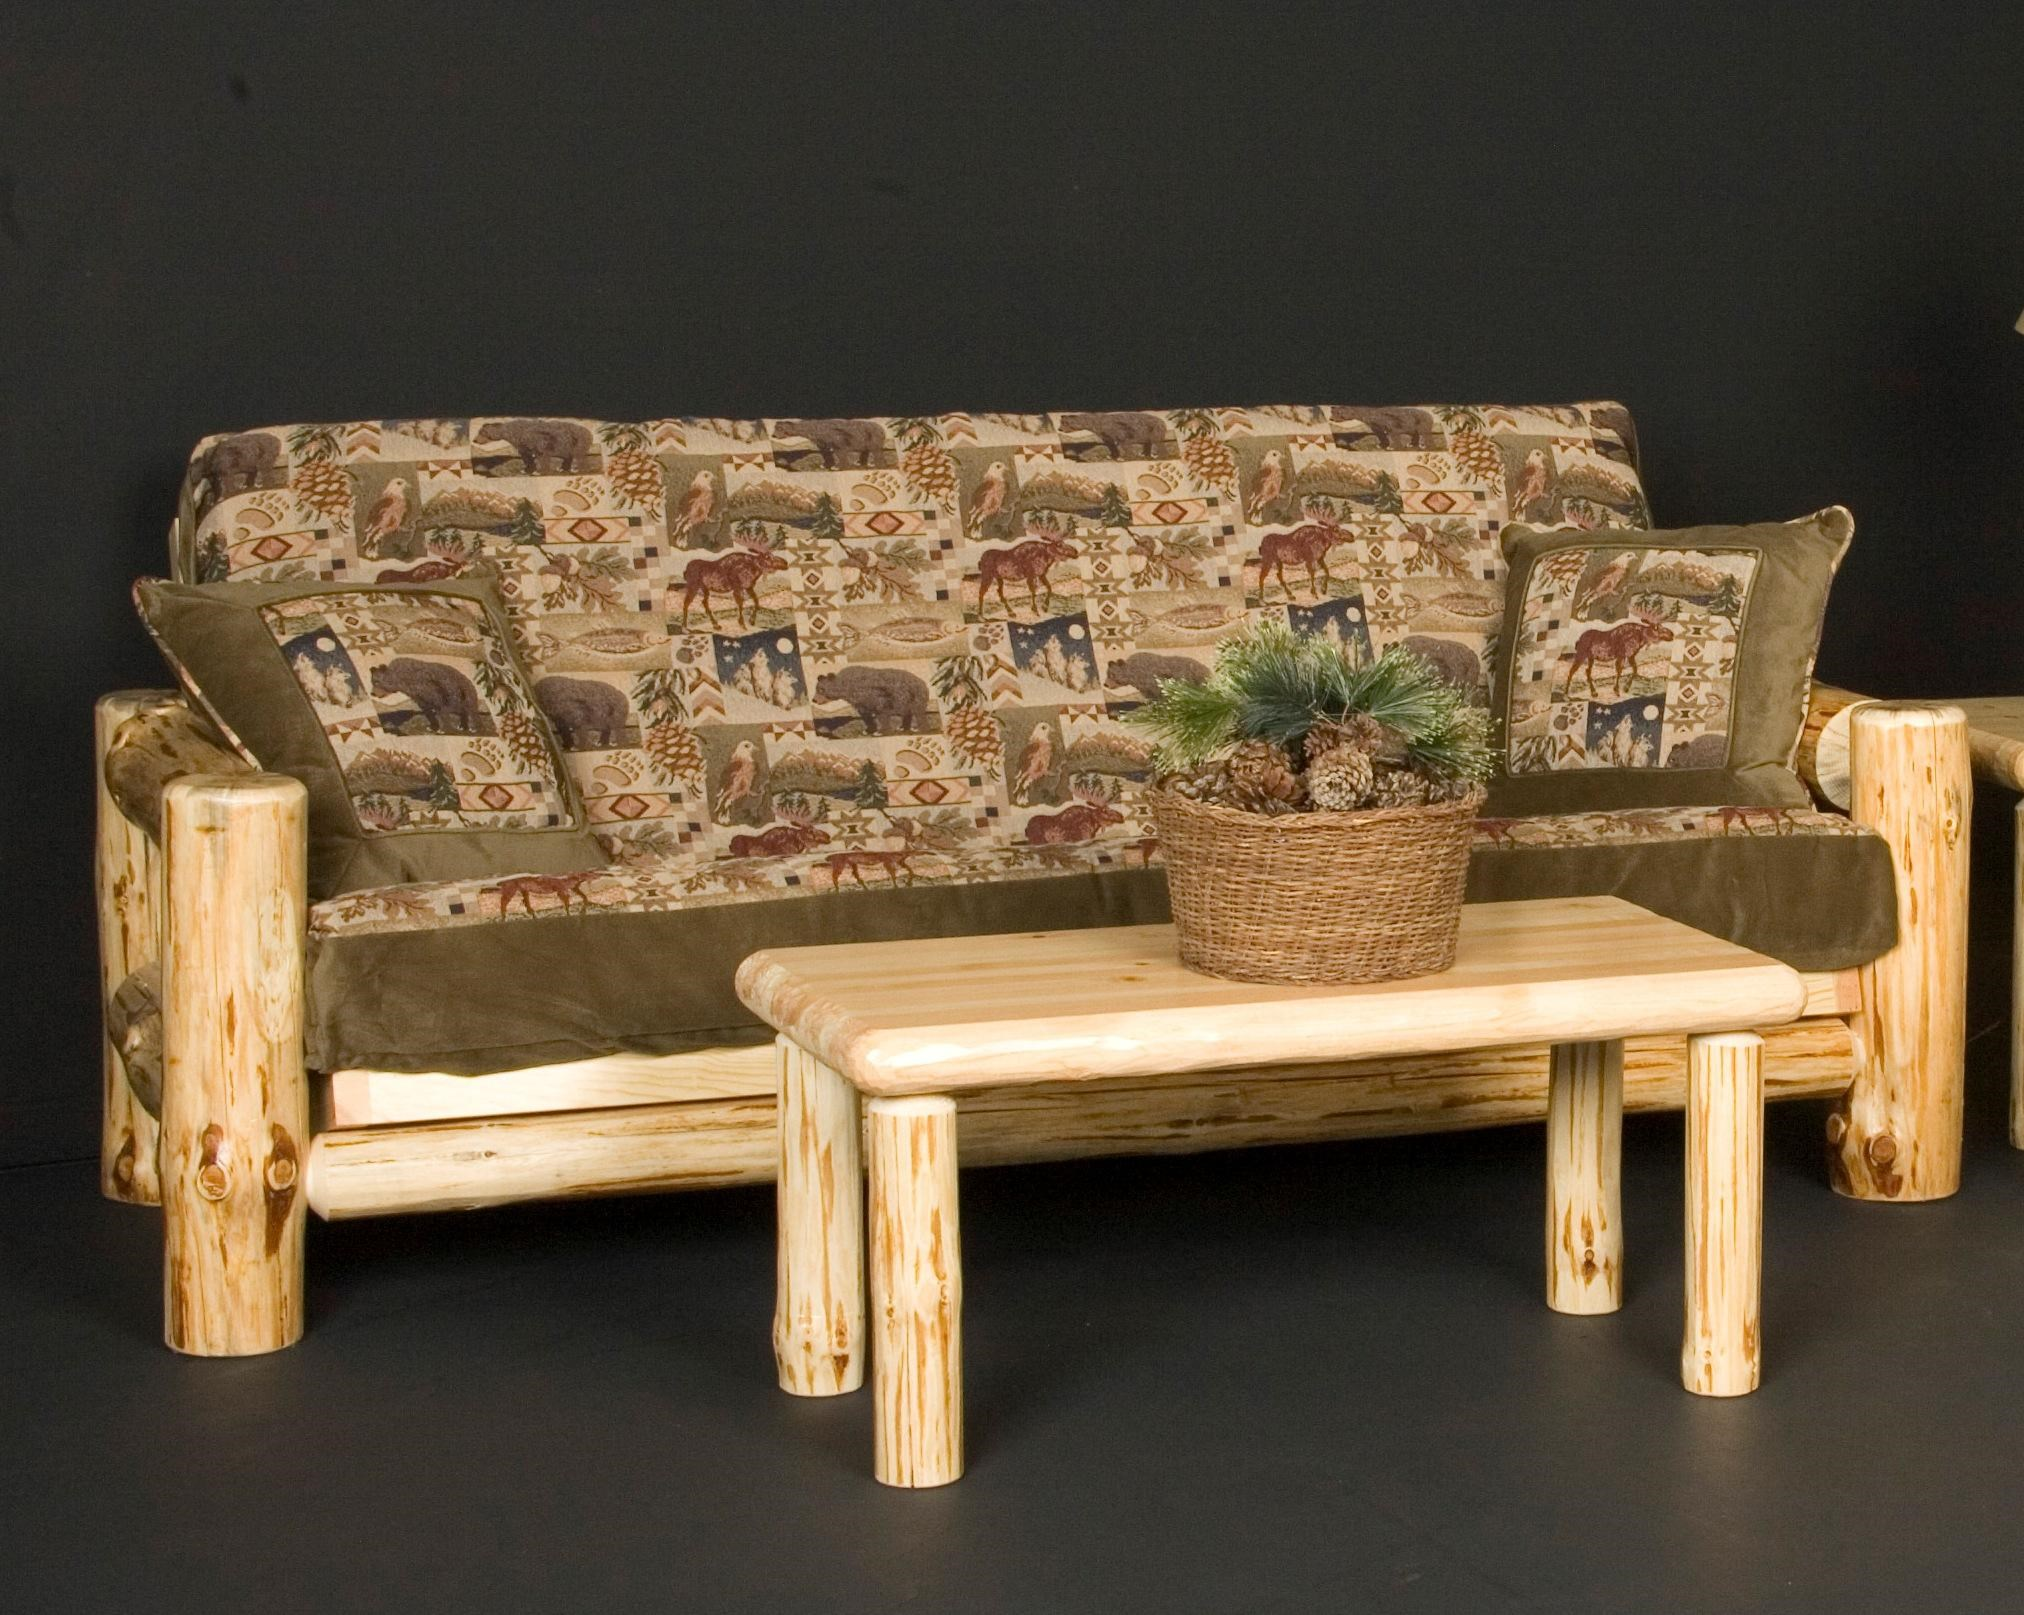 Wilderness Rustic Full Futon With Included Mattress And Exposed Wood Frame Becker Furniture World